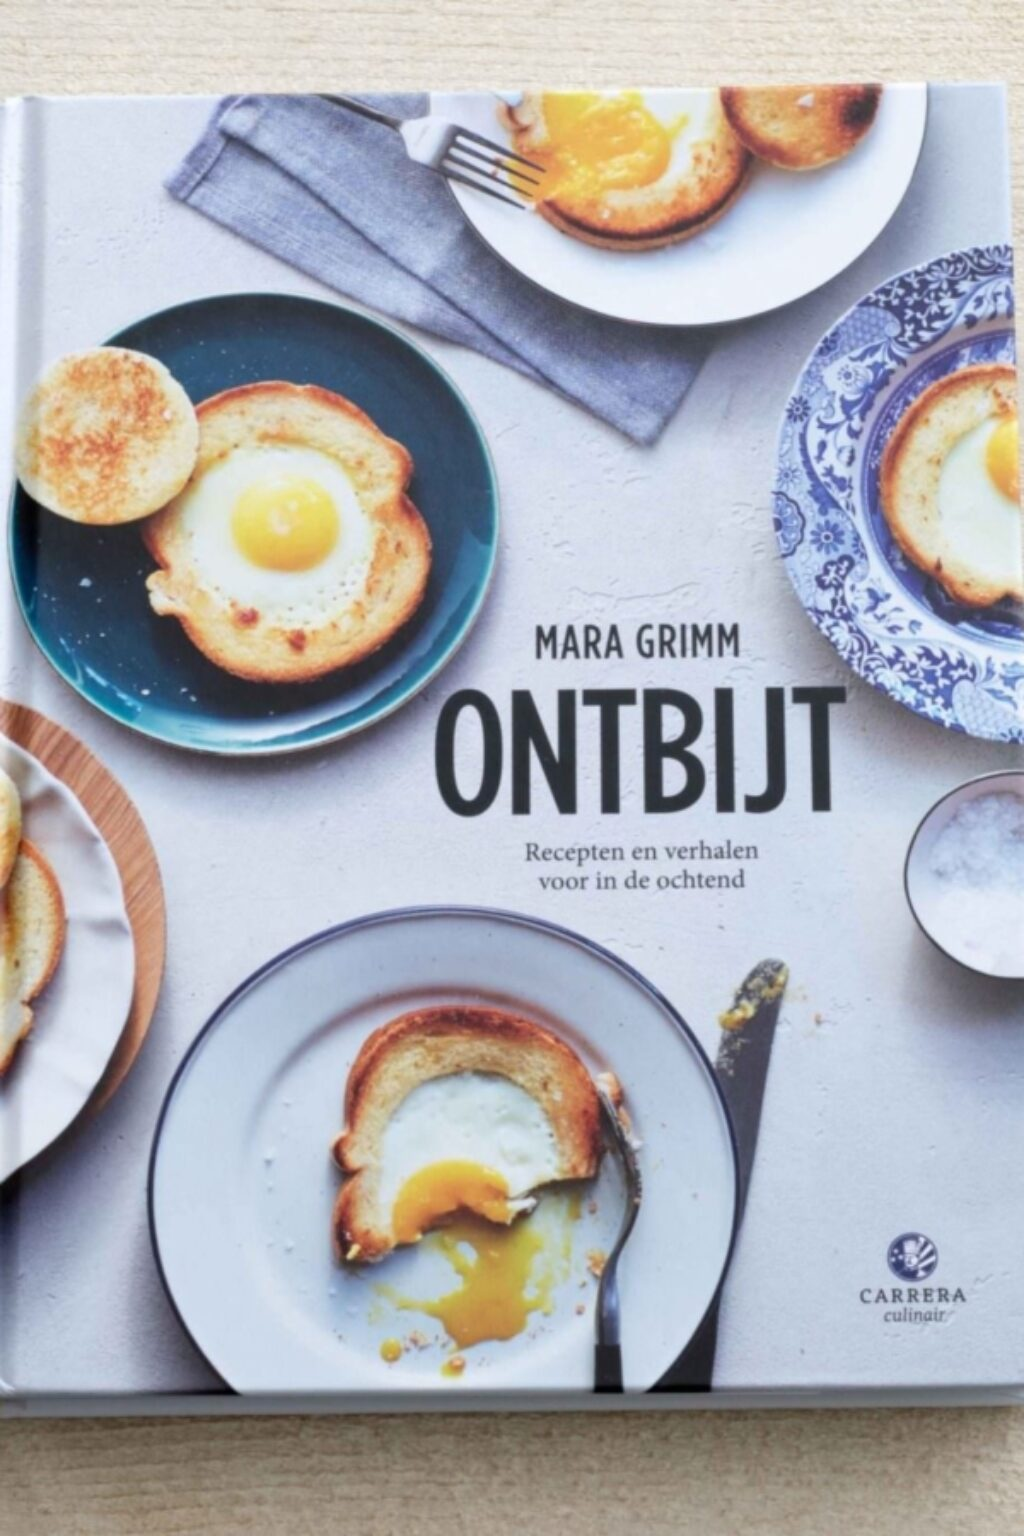 Review: Ontbijt